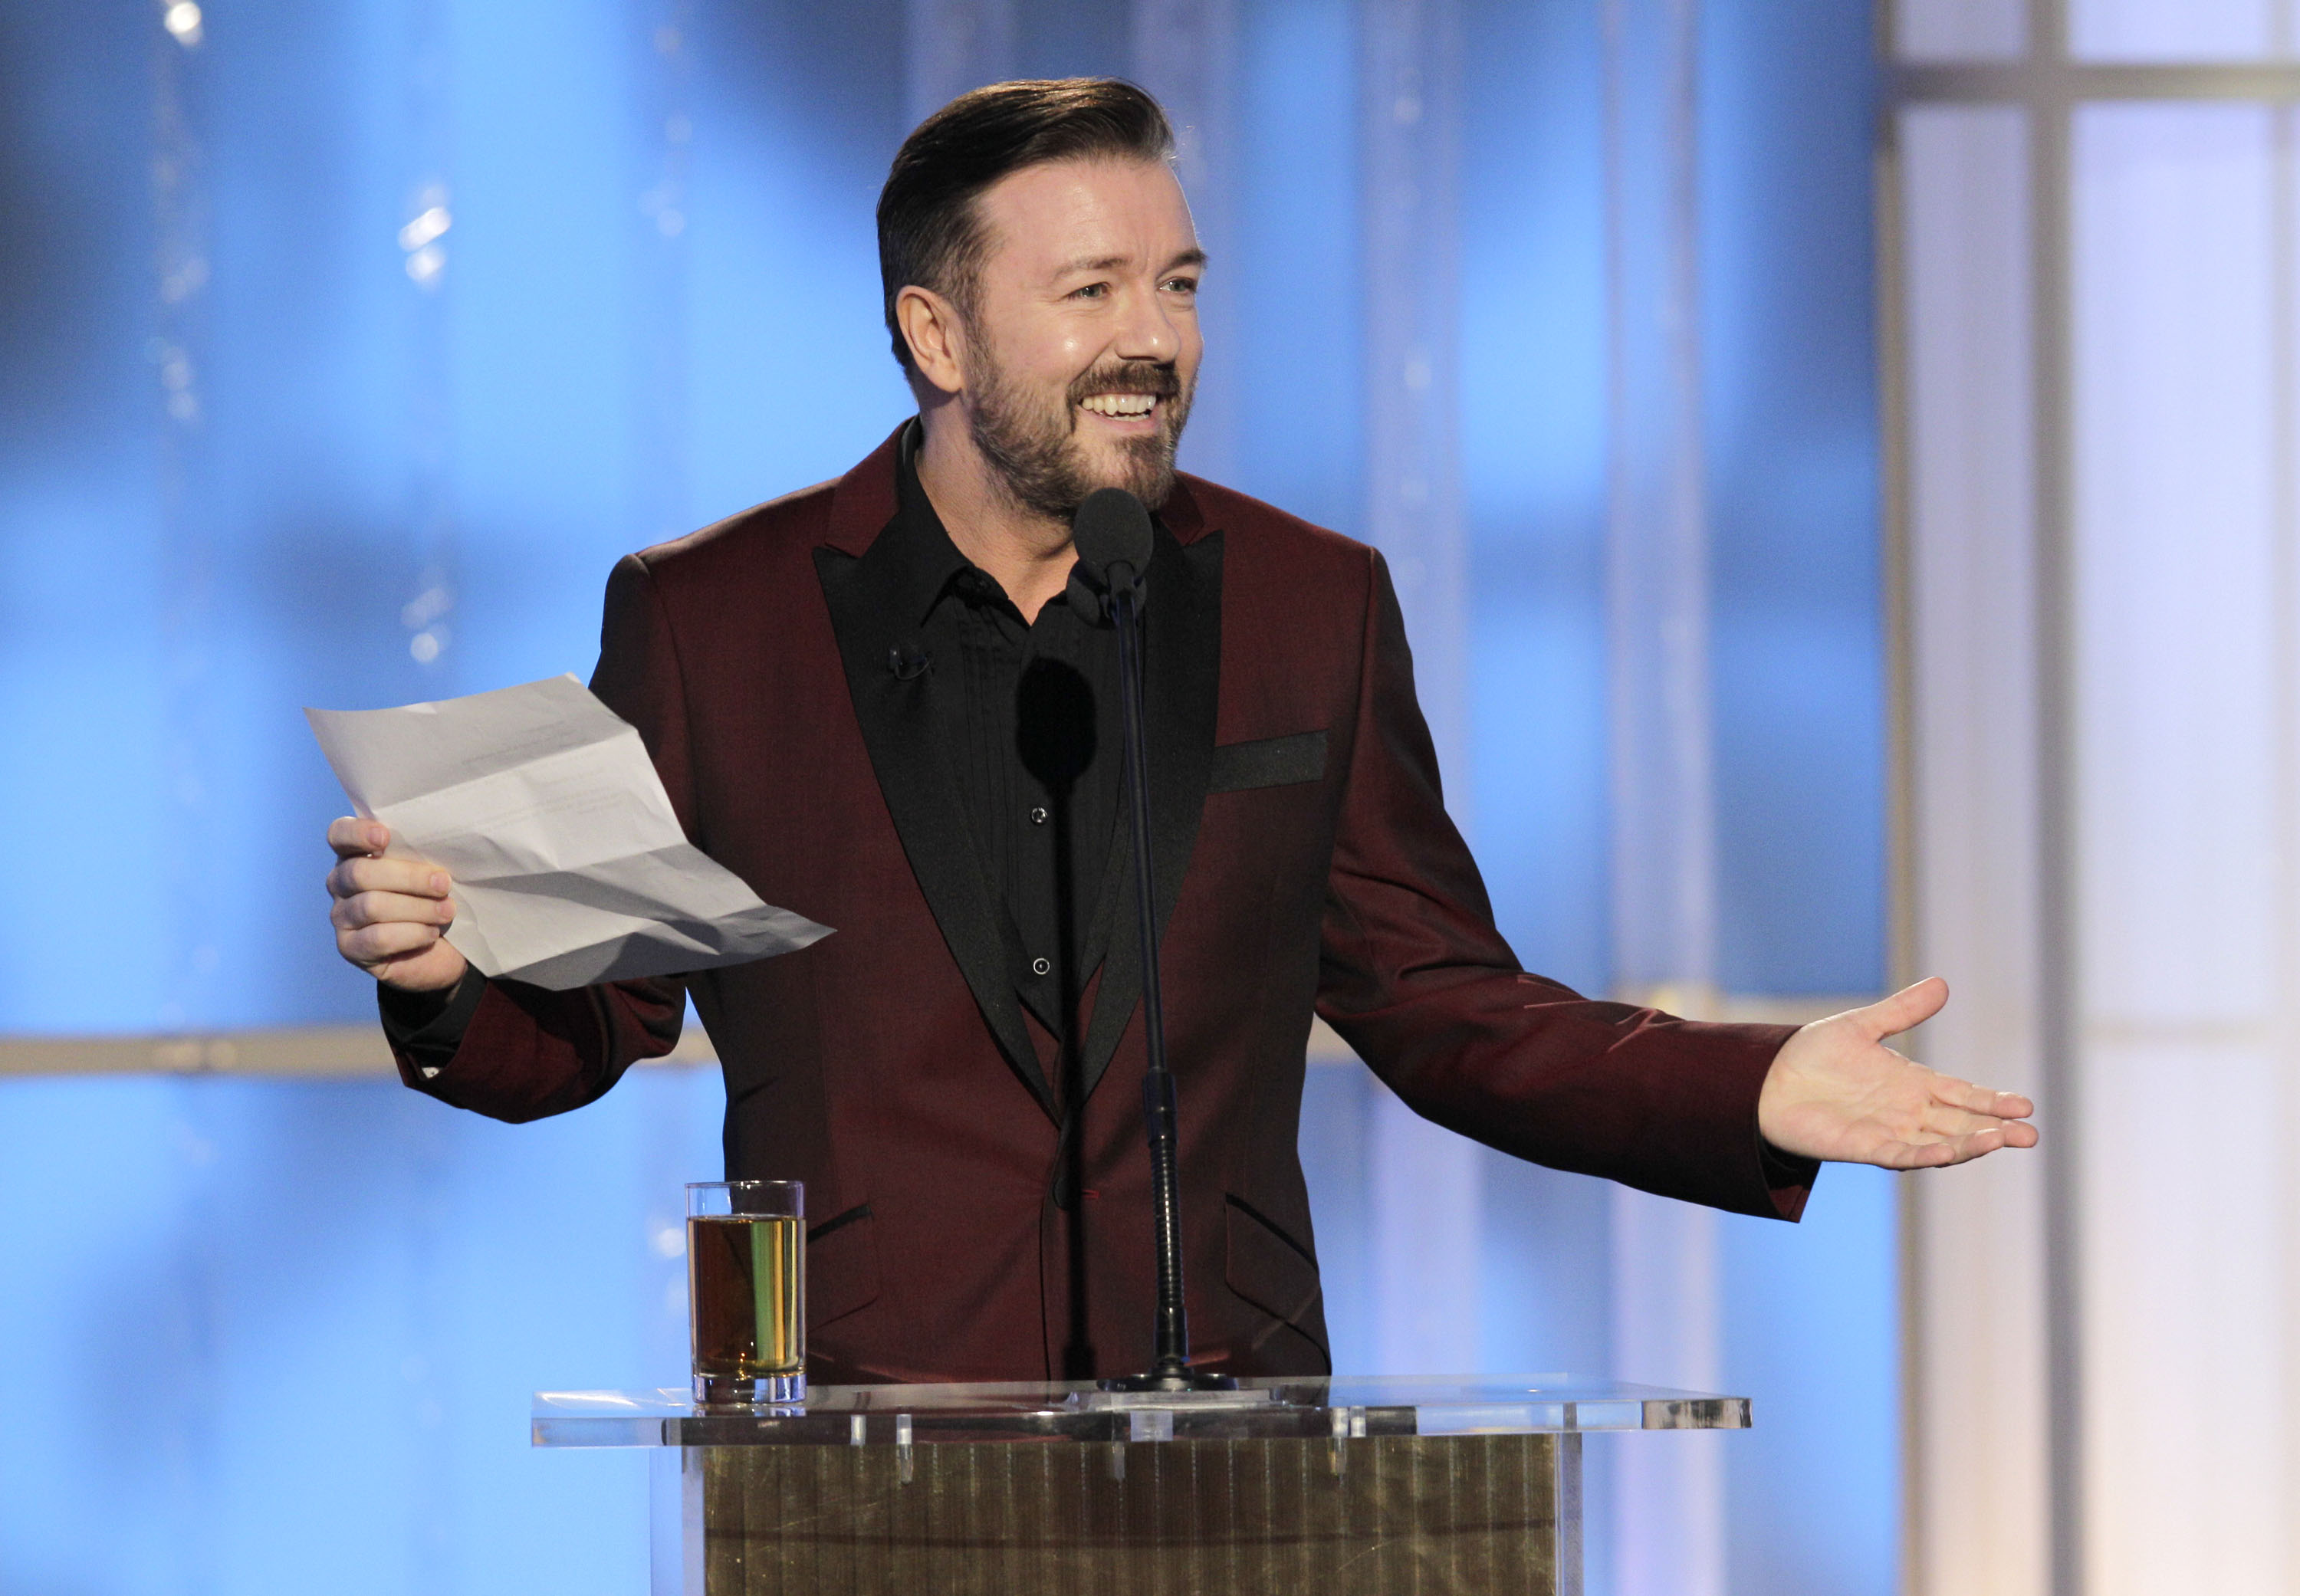 Ricky Gervais to host the Golden Globes one last time